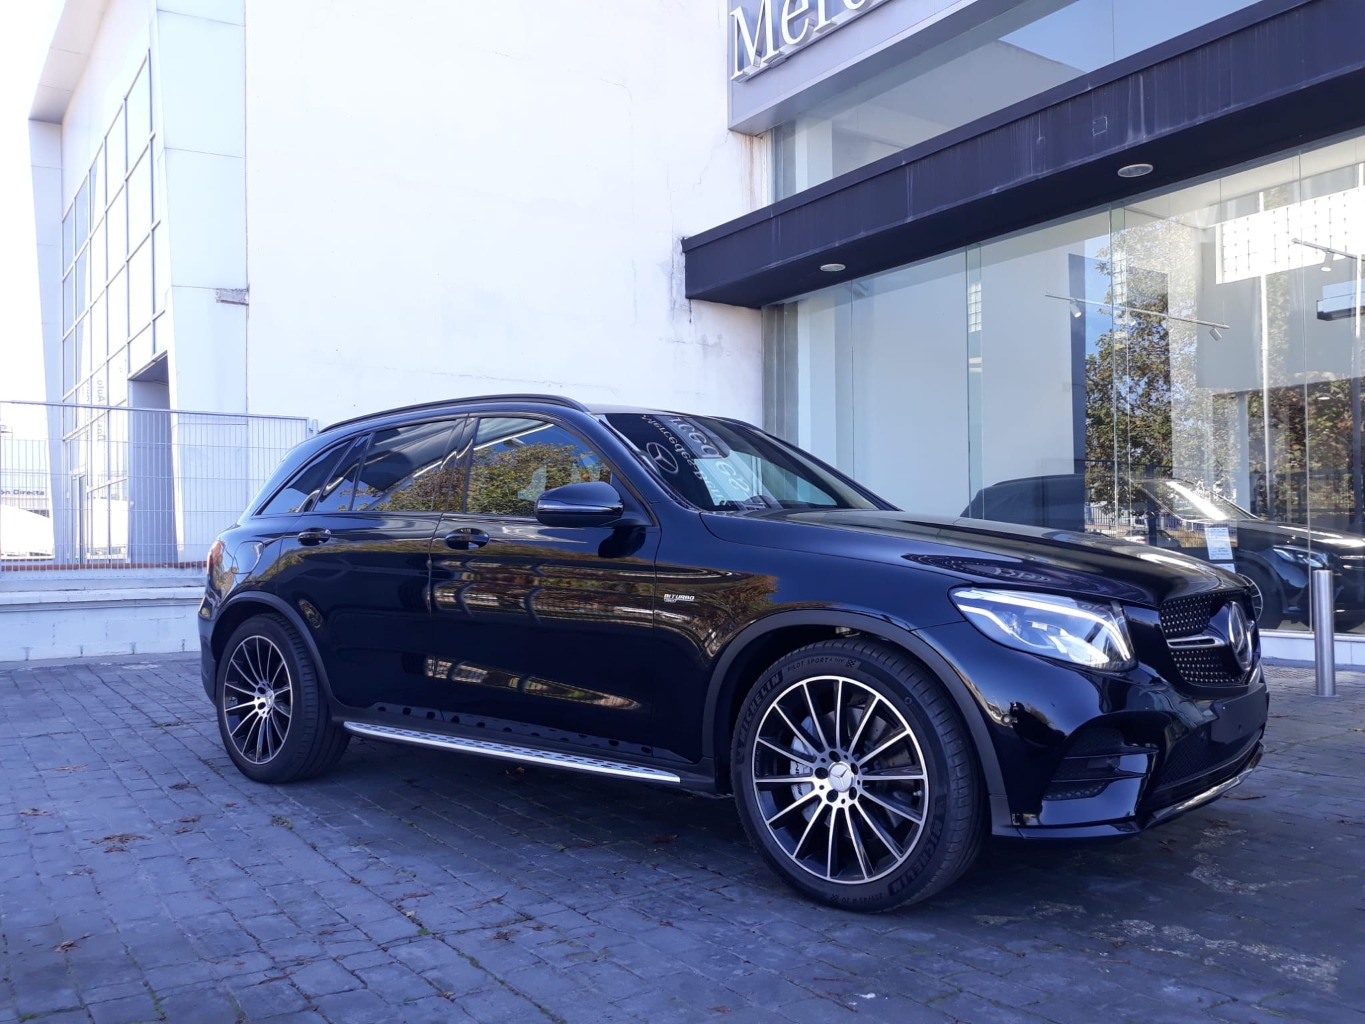 MERCEDES GLC 43 AMG 4 MATIC